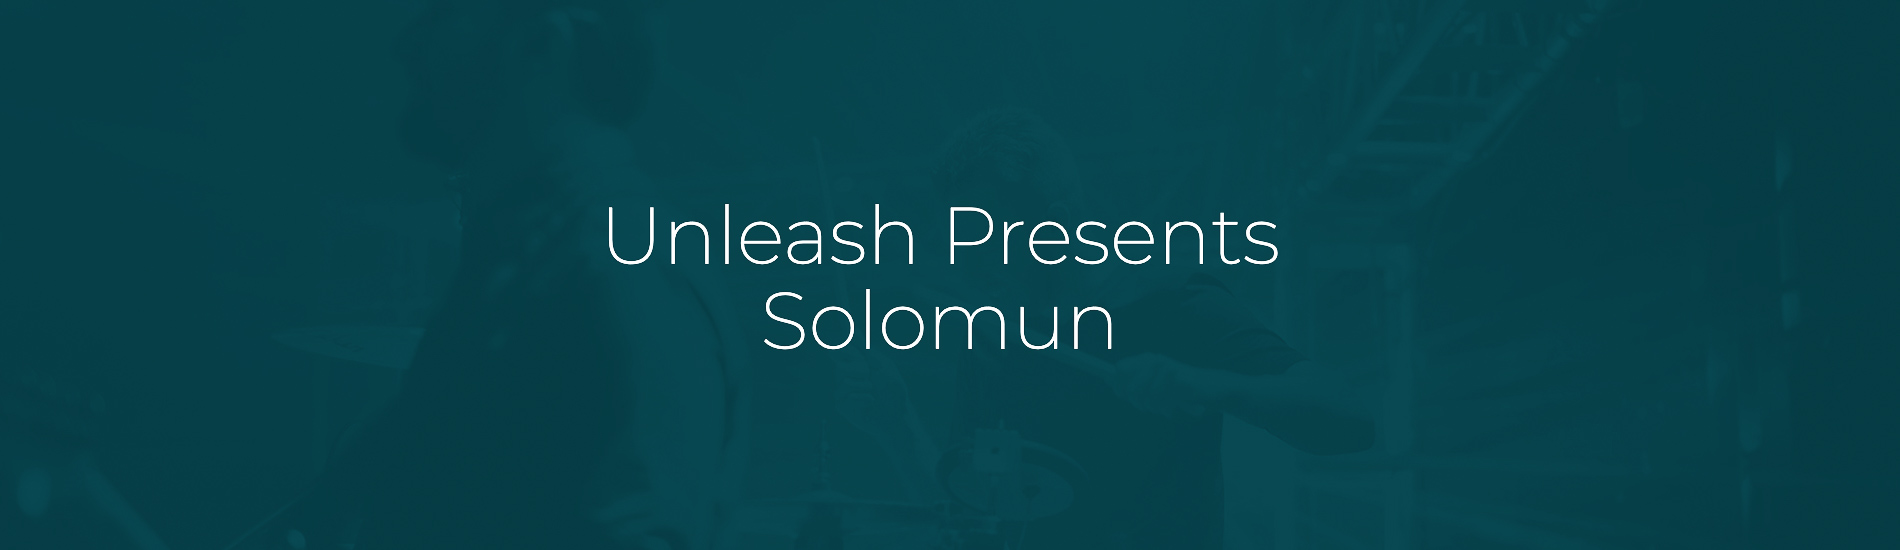 Unleash Presents Solomun